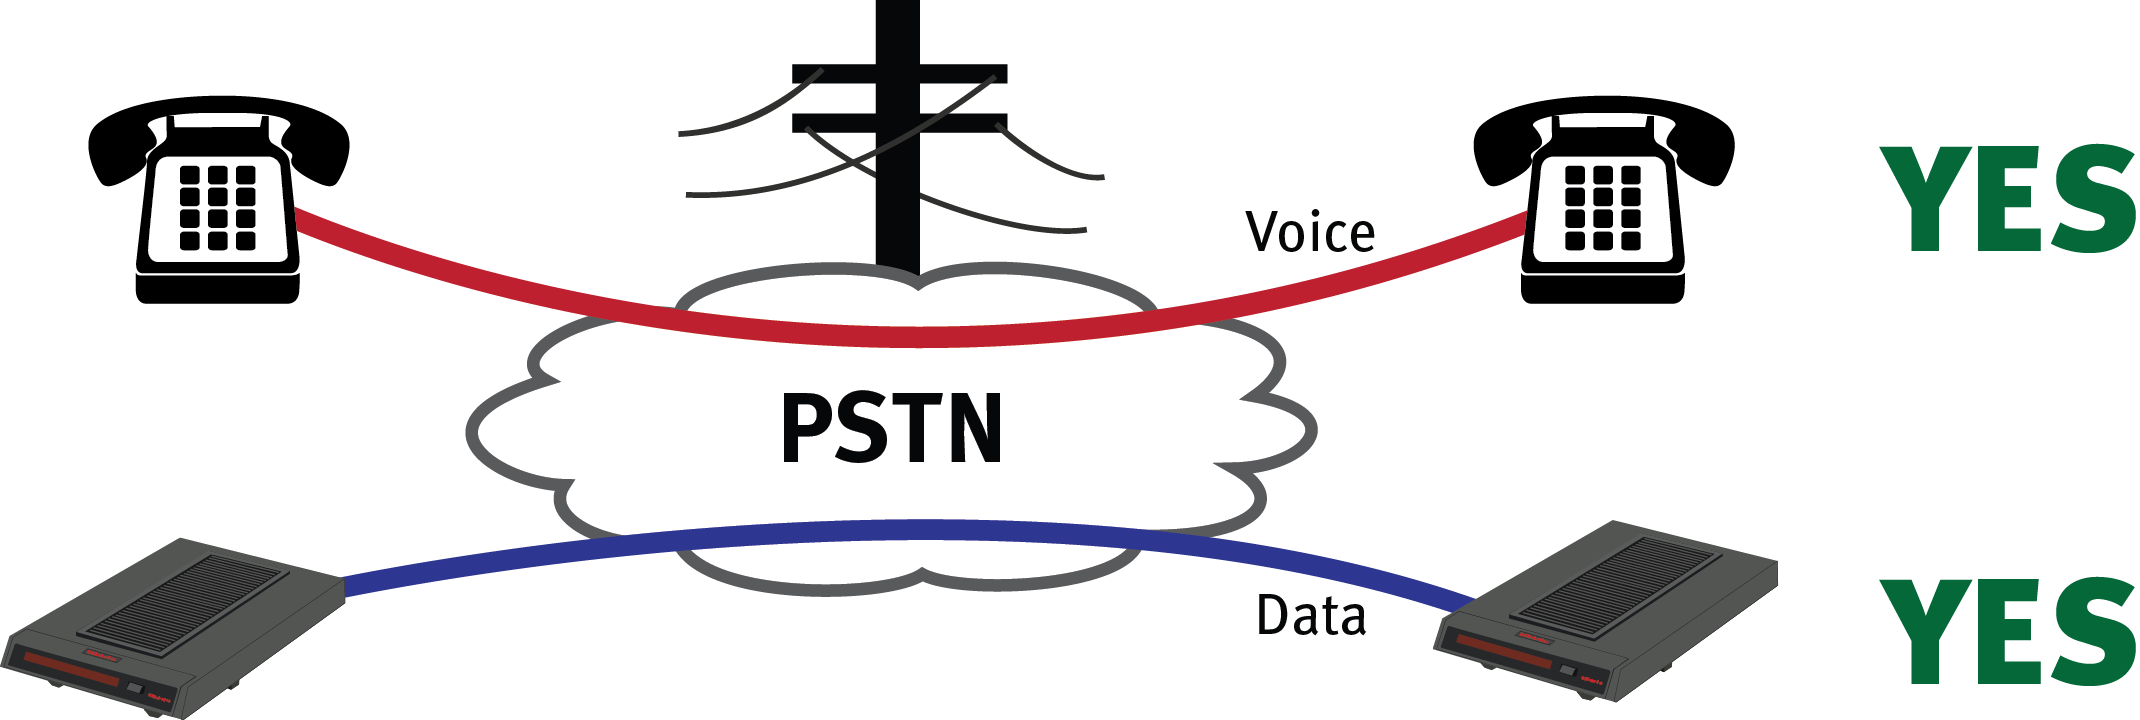 PSTN Voice Data Network with phones and modems